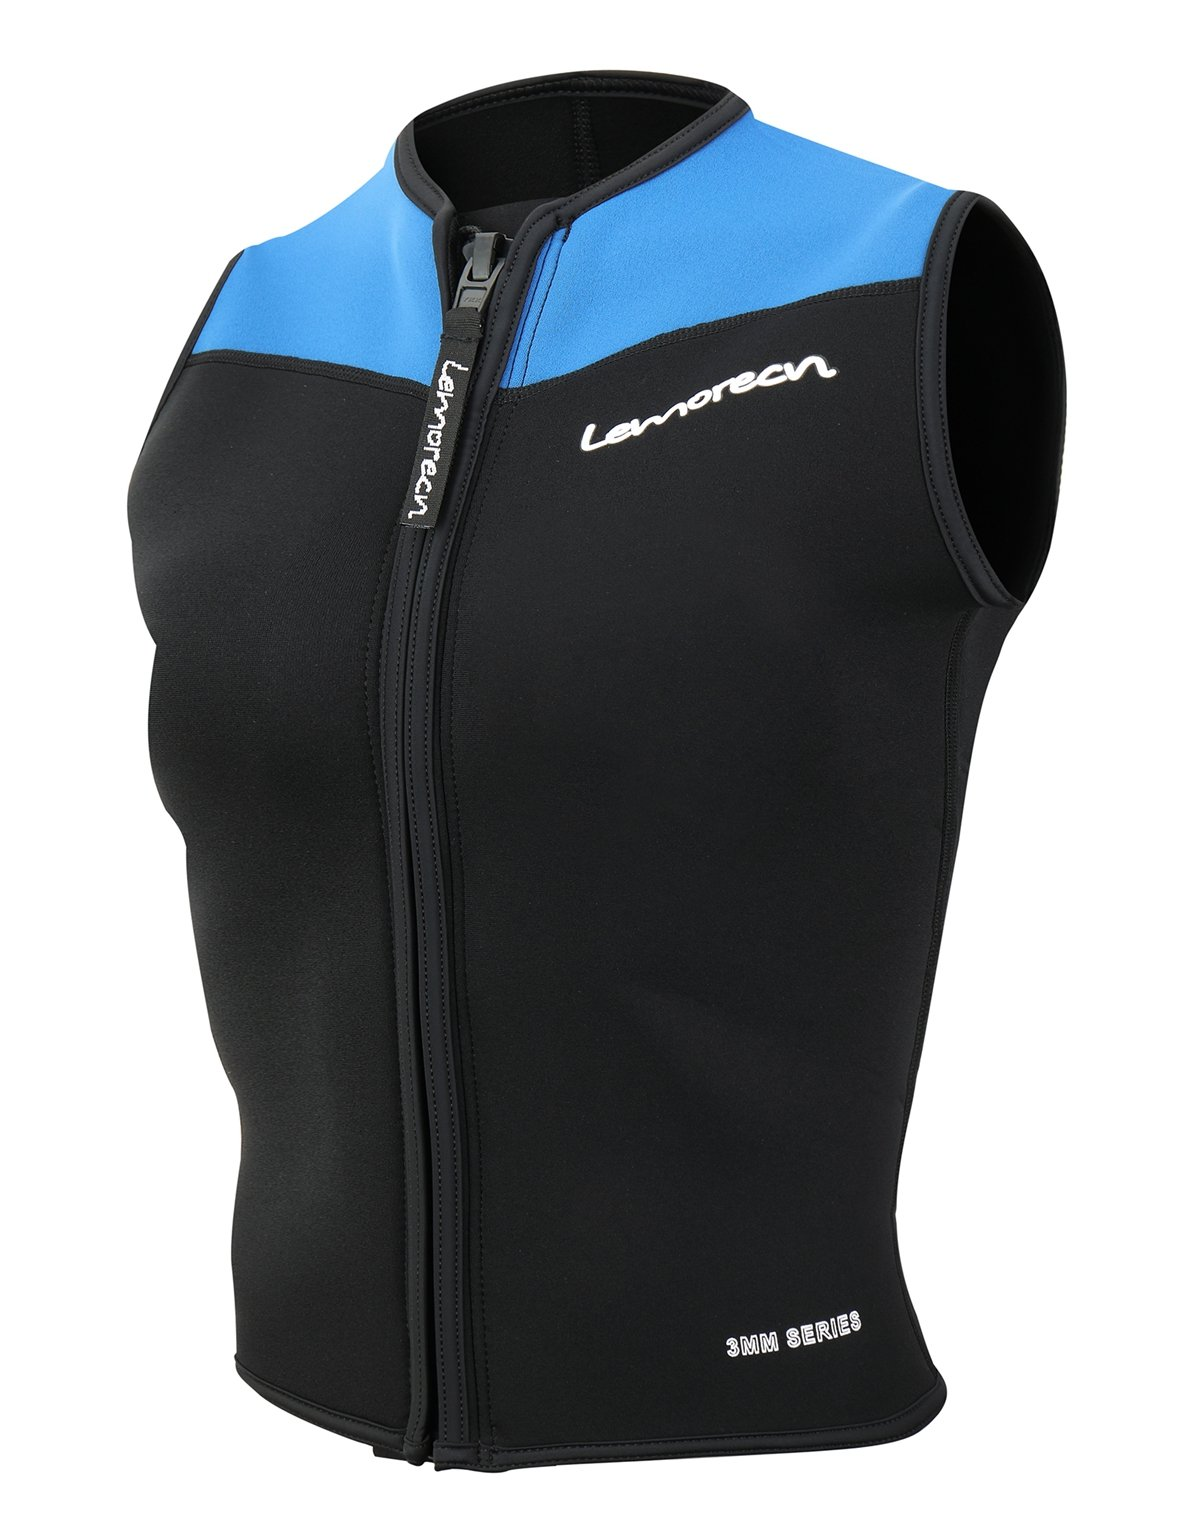 Lemorecn Wetsuits Top Premium Neoprene 3mm Zipper Diving Vest (2095blueL) by Lemorecn